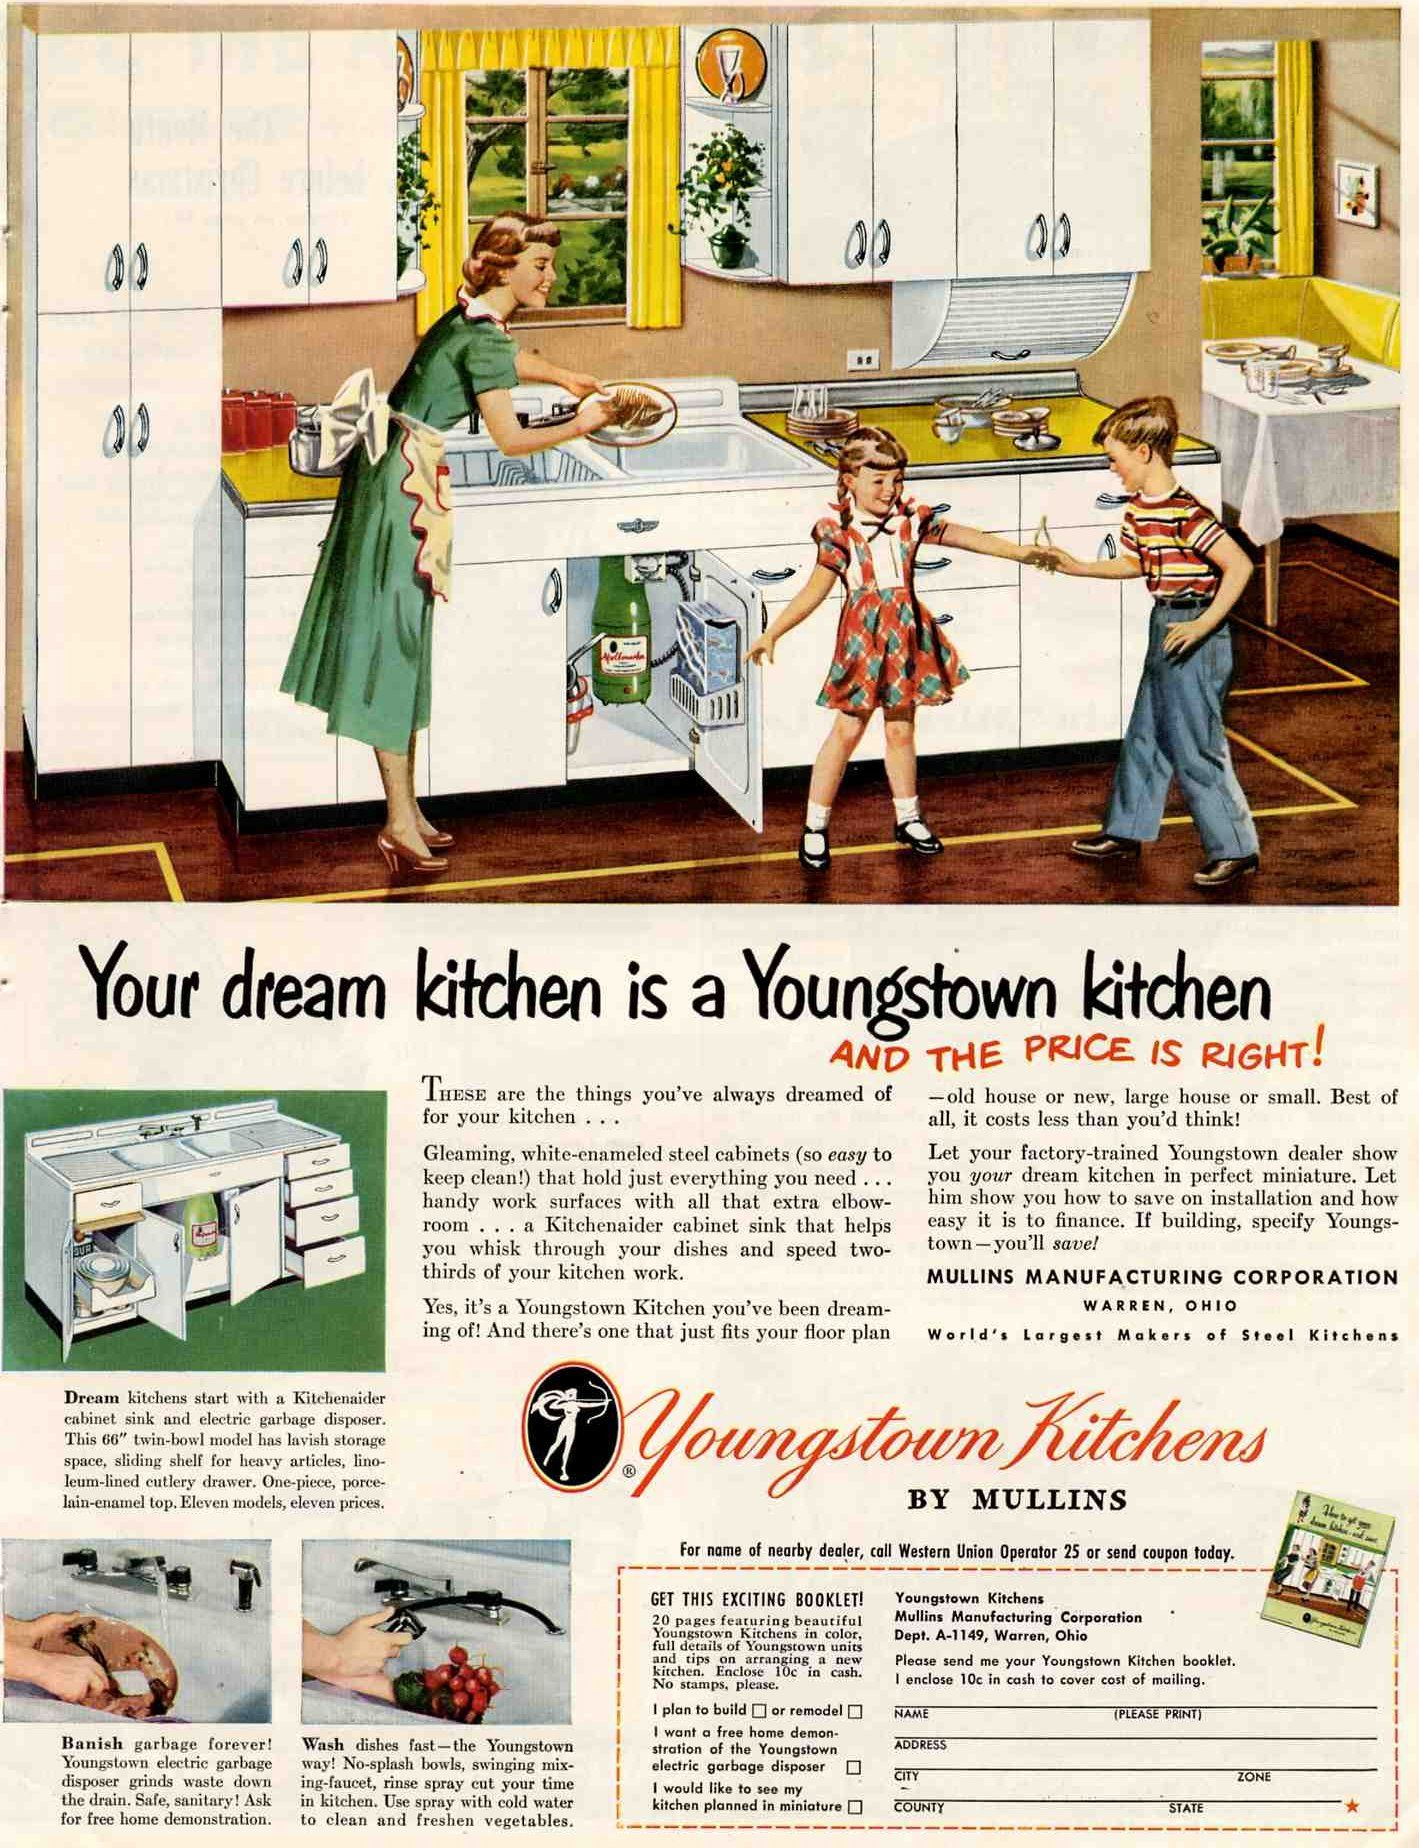 18 Kitchens Bathrooms And Bedrooms From 1949 Youngstown Domestic Engineer St Charles